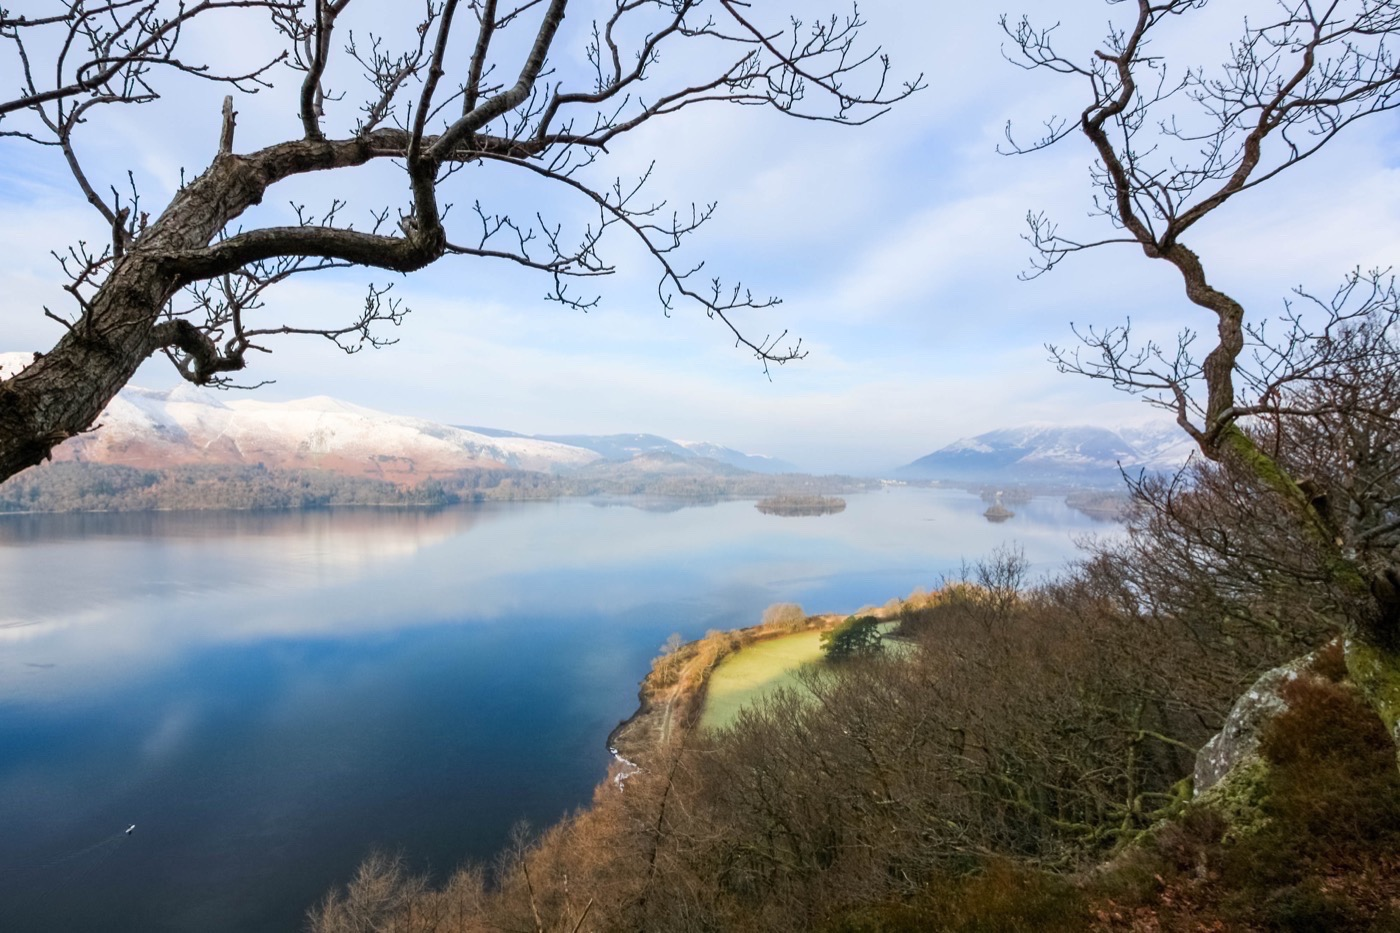 mary-mount-hotel-accommodation-derwentwater-lake-district-28_1400px.jpg